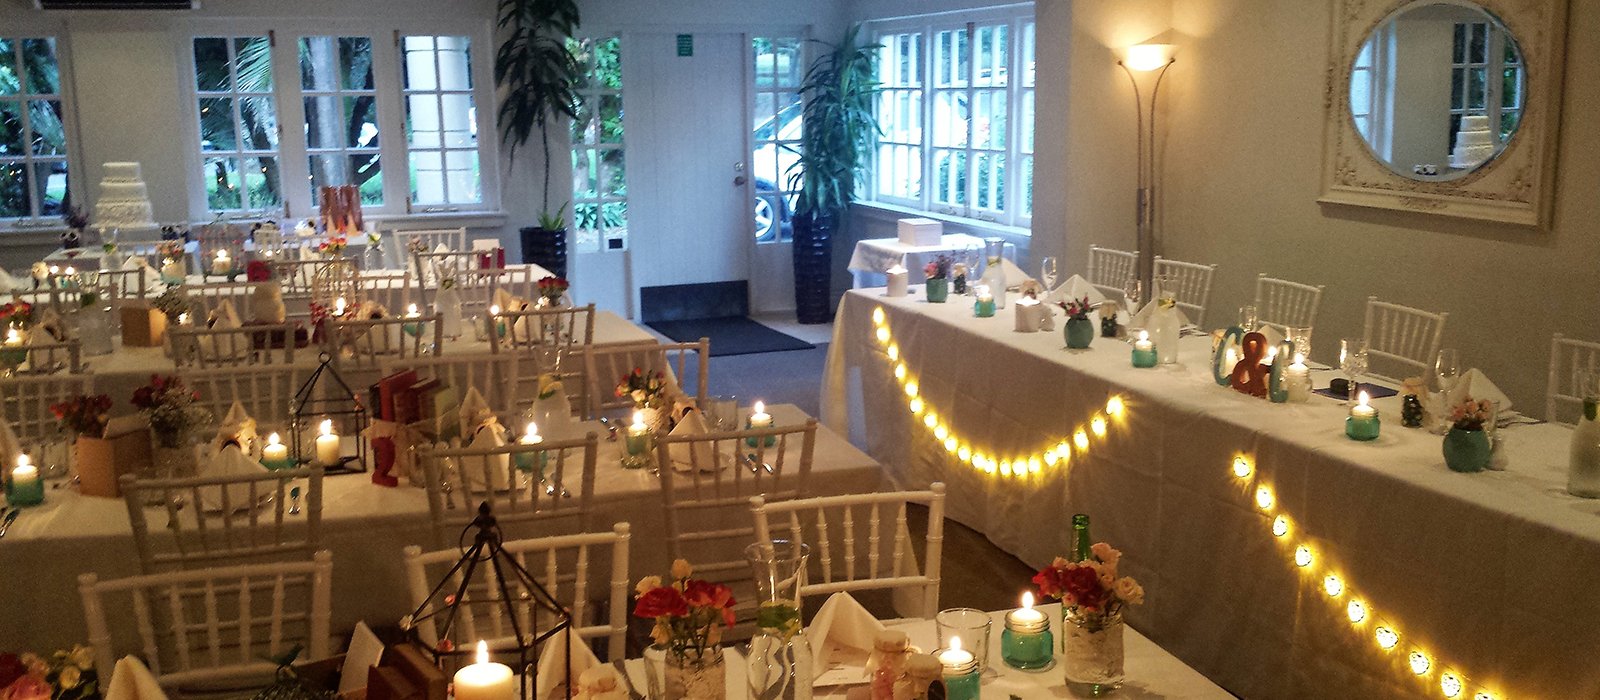 Weddings at the Wintergarden Pavilion // Make it Personal